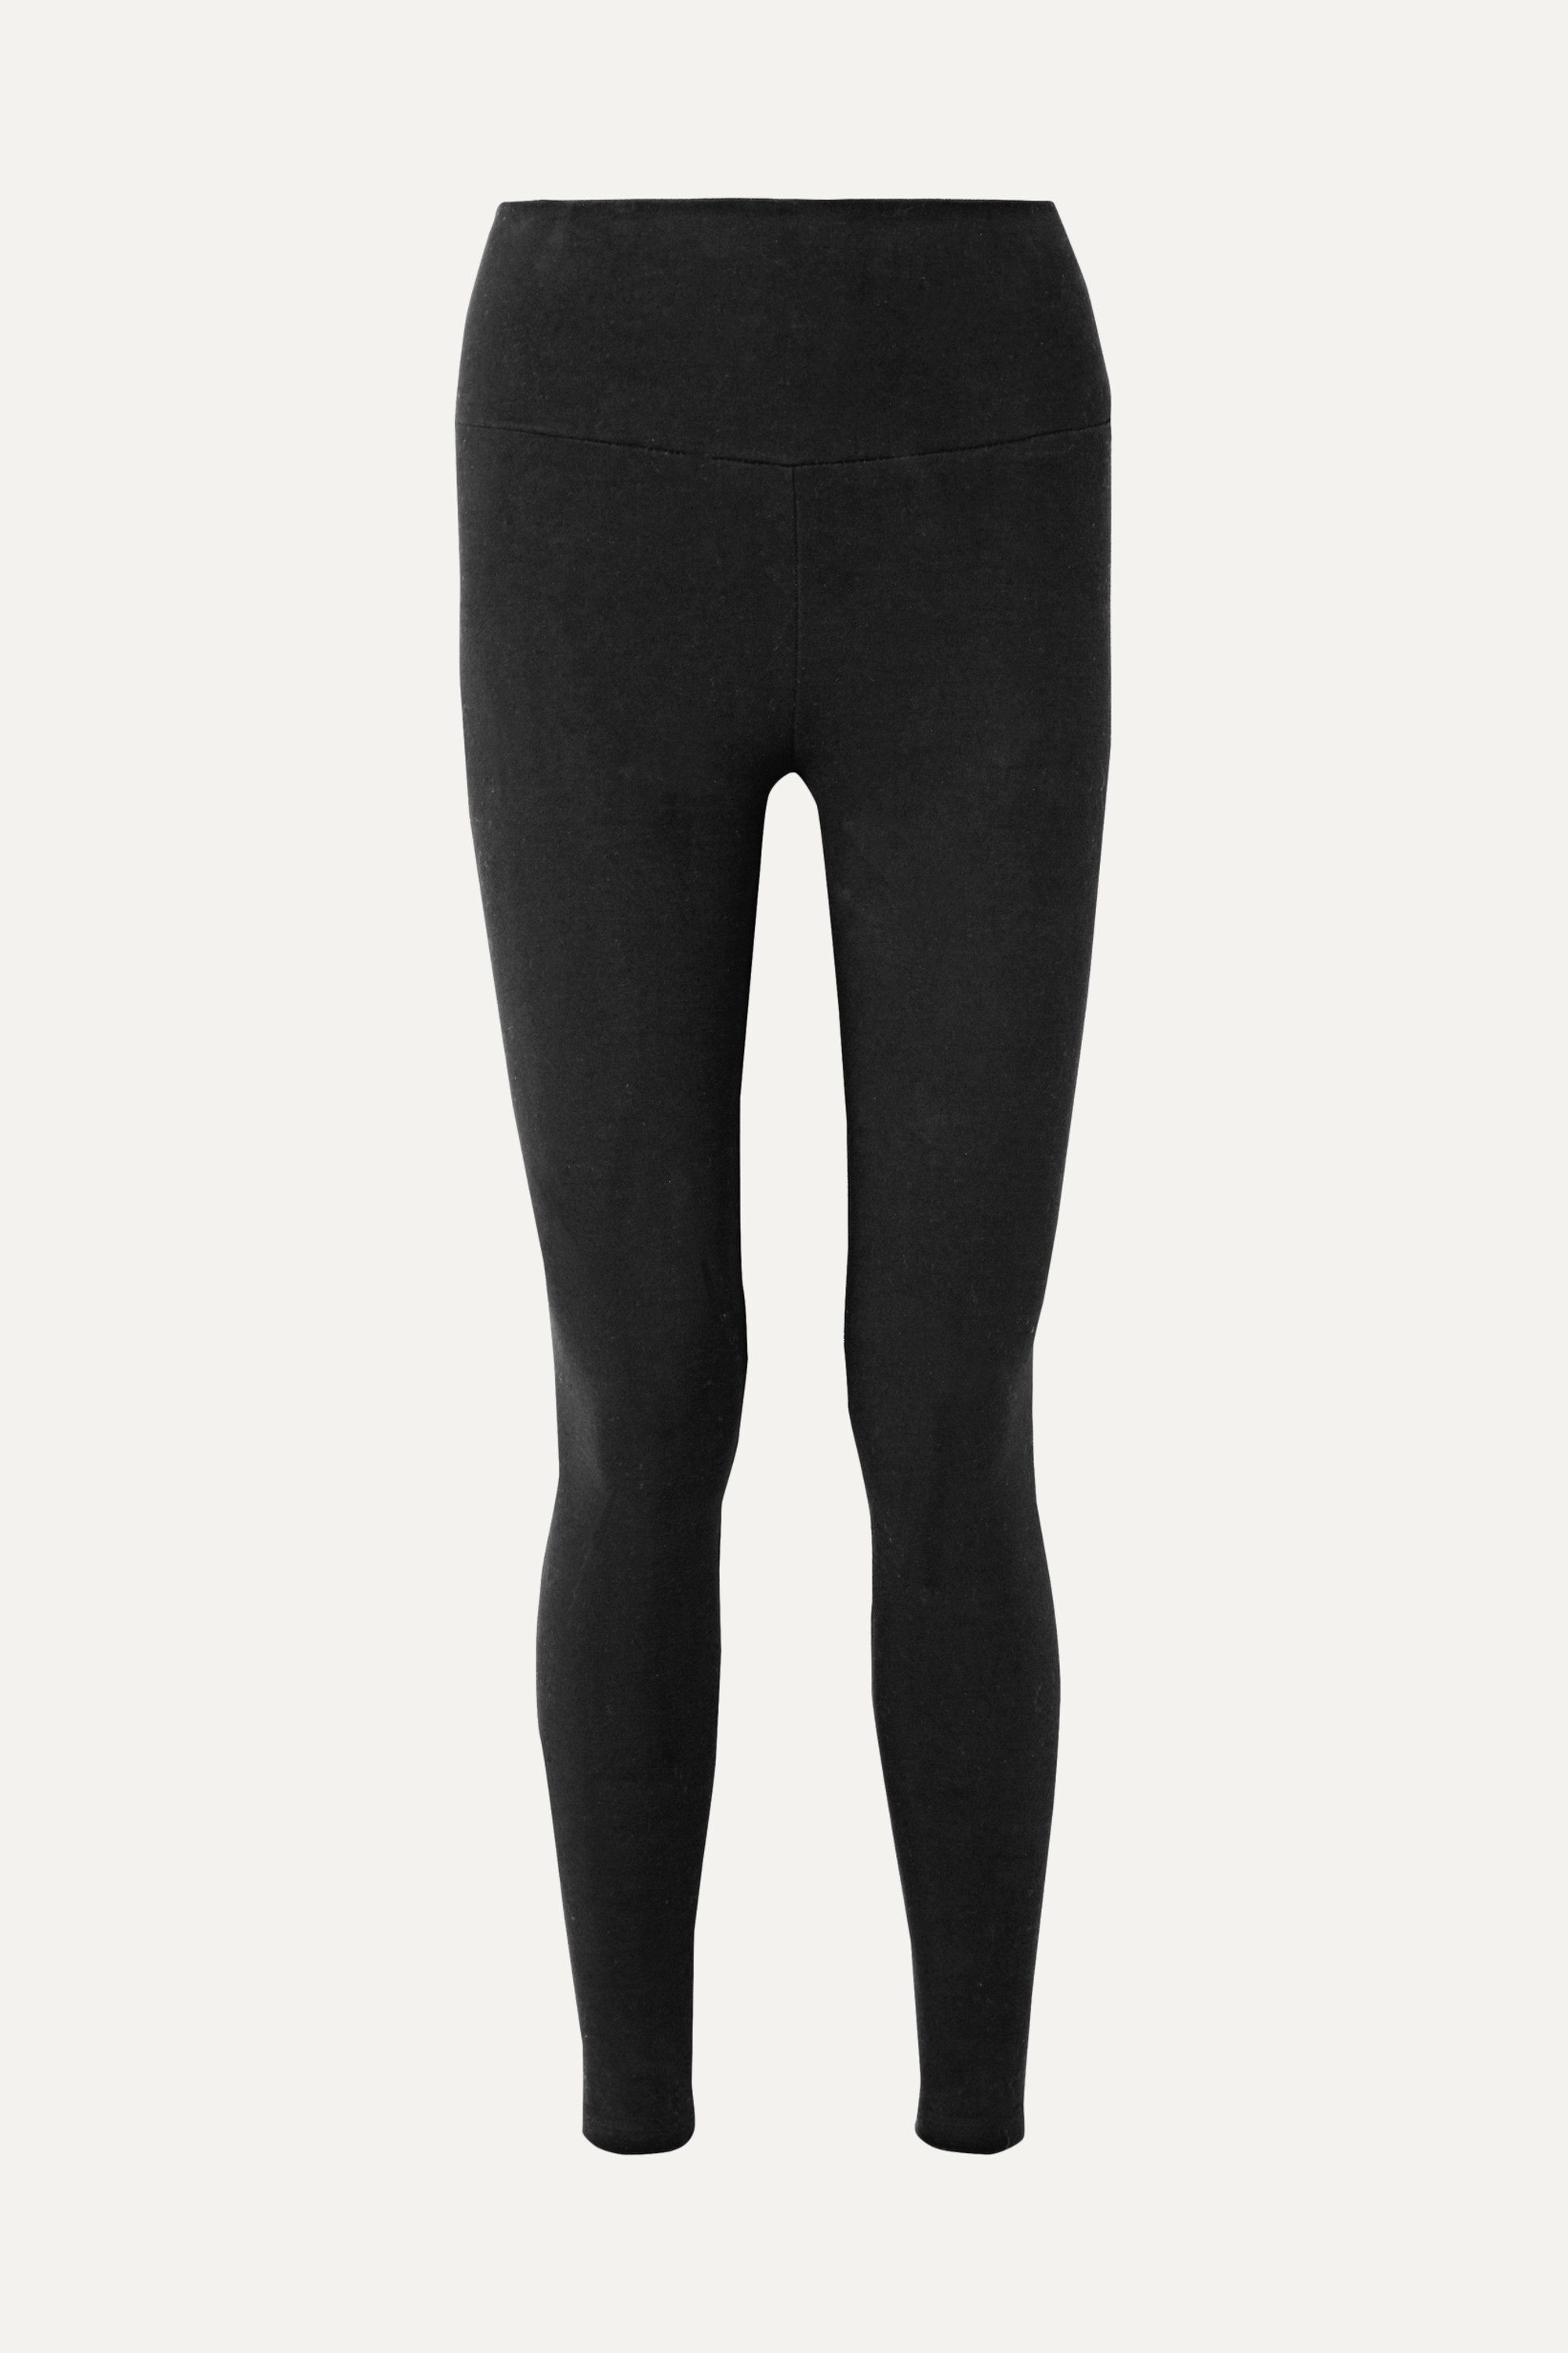 James Perse Fleece leggings